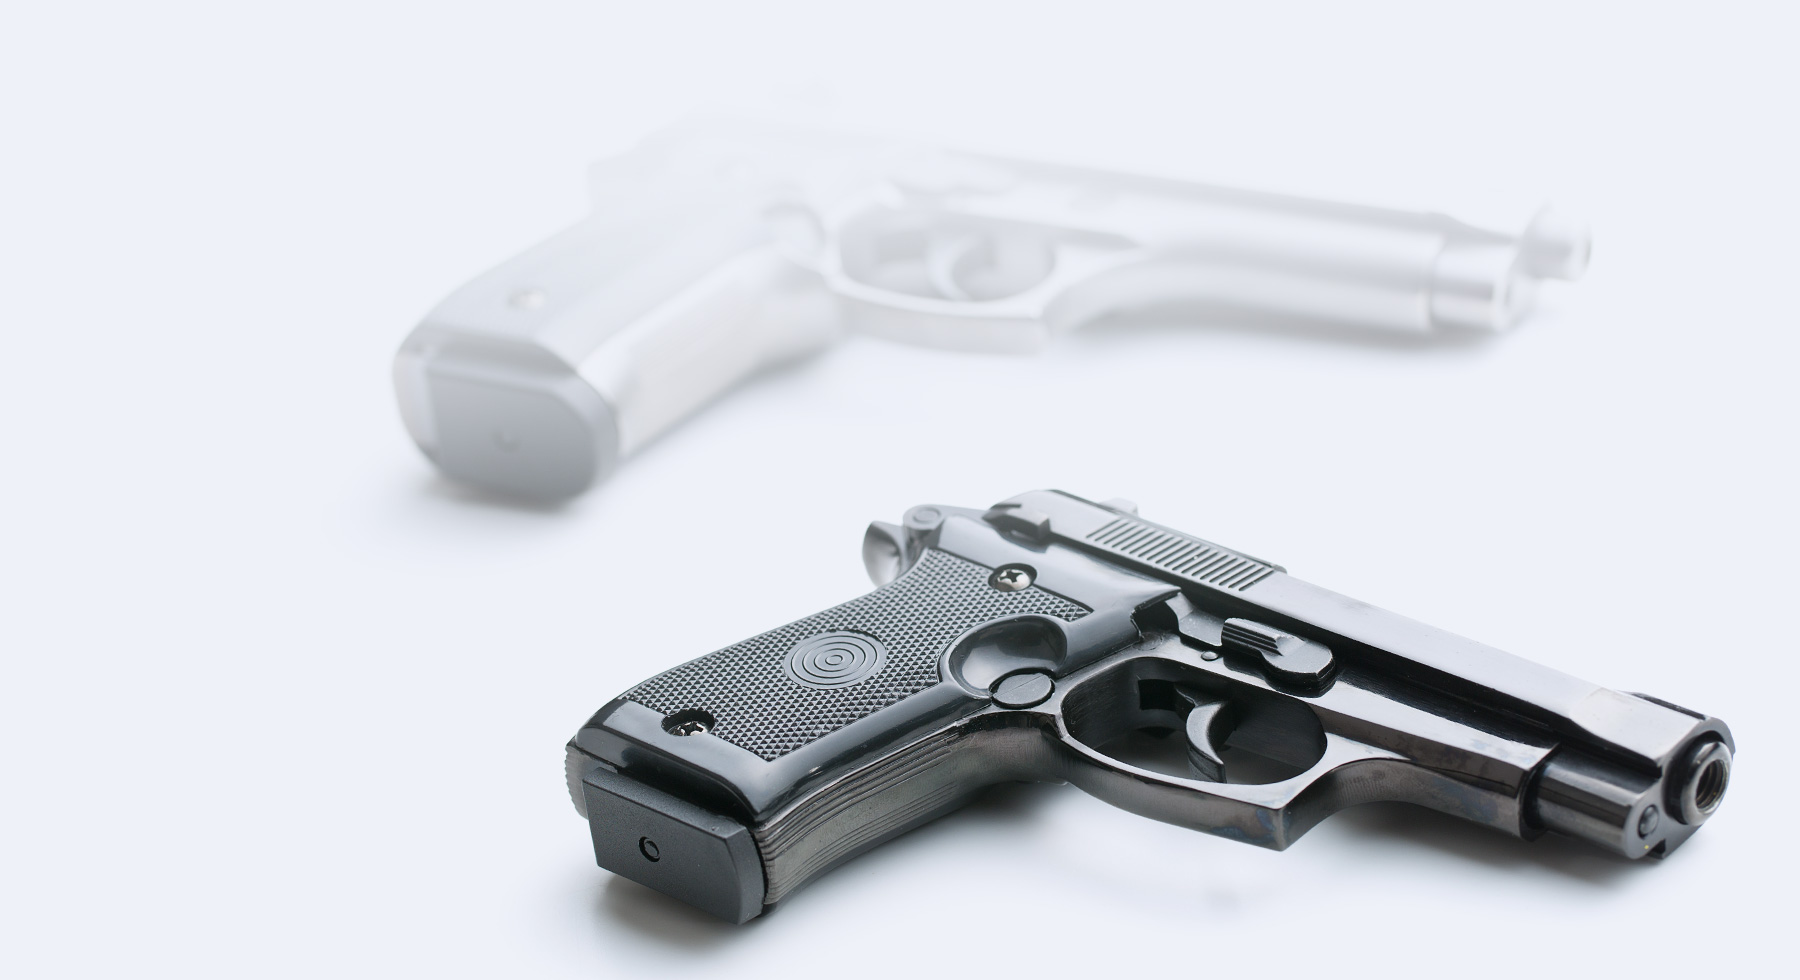 Hand gun on a blank white background with fading shadow in the background.